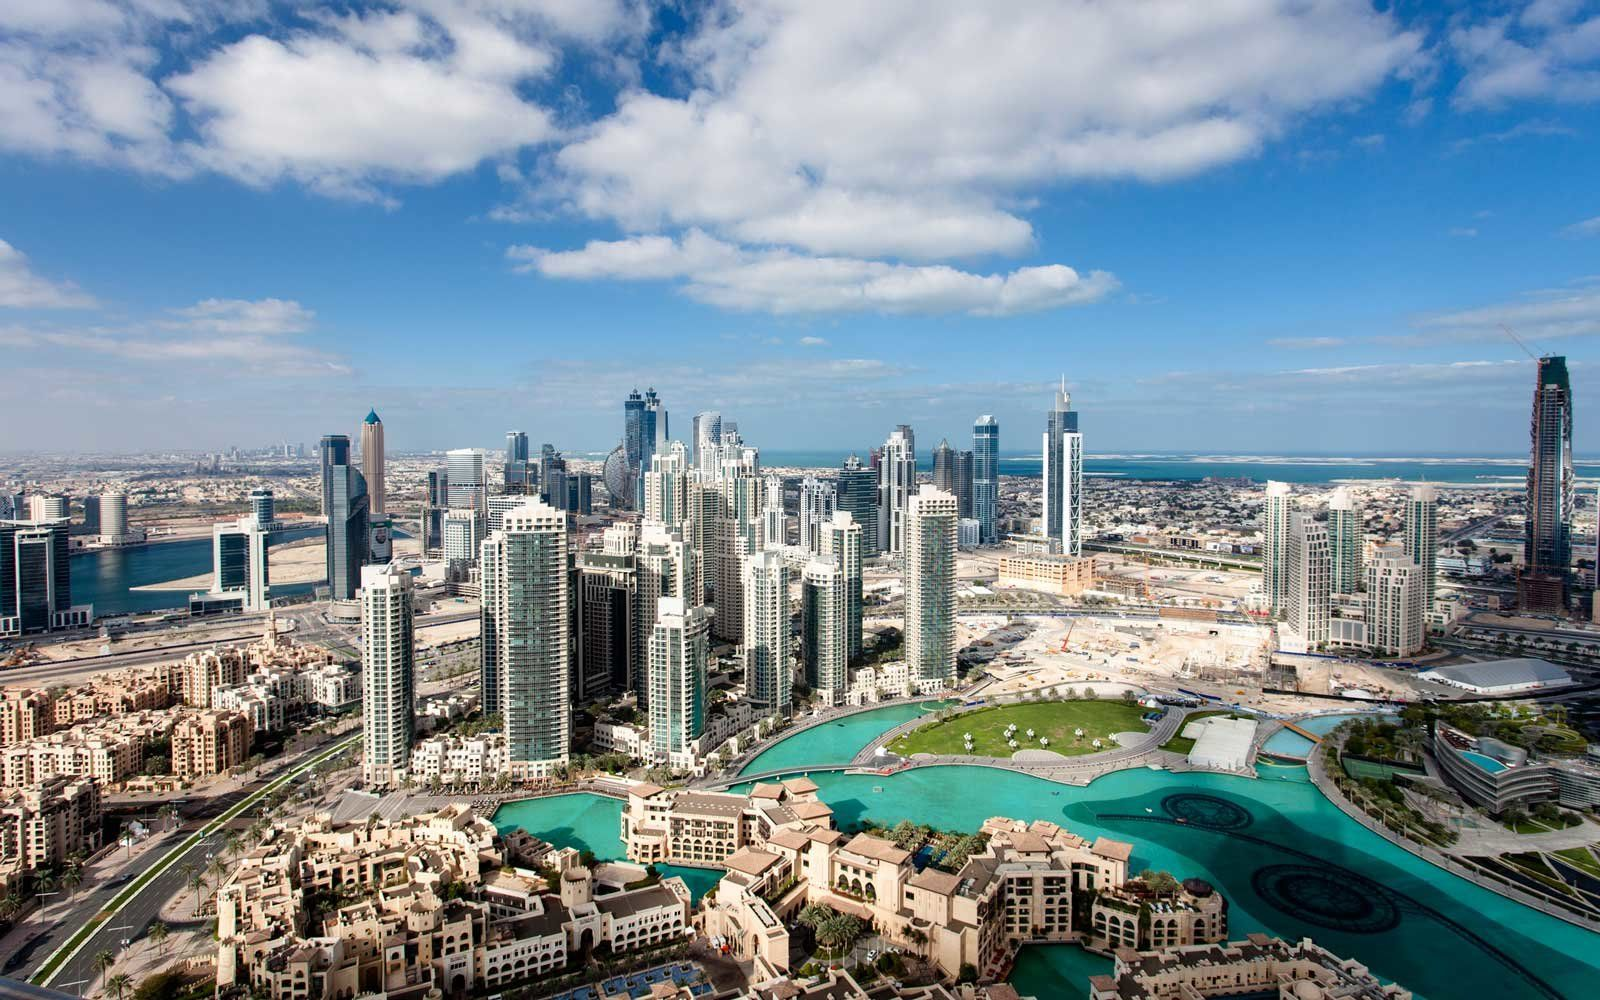 Search Attractive Properties to Buy, Sell & Rent in AUM Real Estate Dubai  #realestate #properties #apartment #villa #uae #property #dubai #dreamhome #luxuryproperty